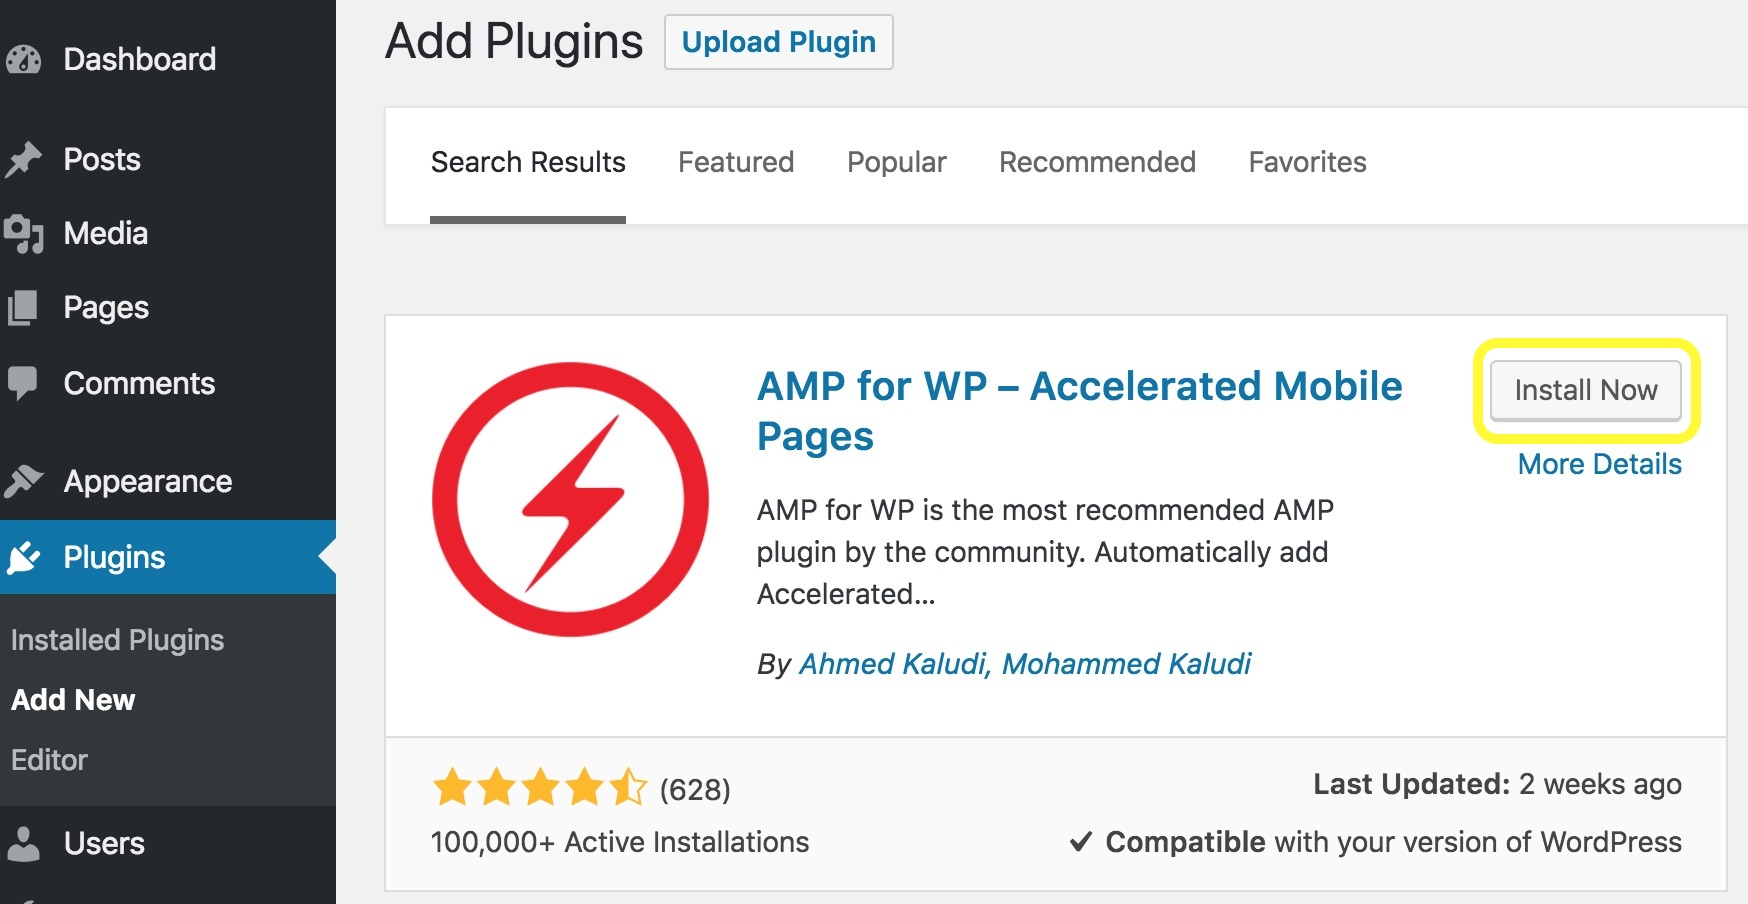 AMP-for-WP-Accelerated-Mobile-Pages-Plugin-WordPress